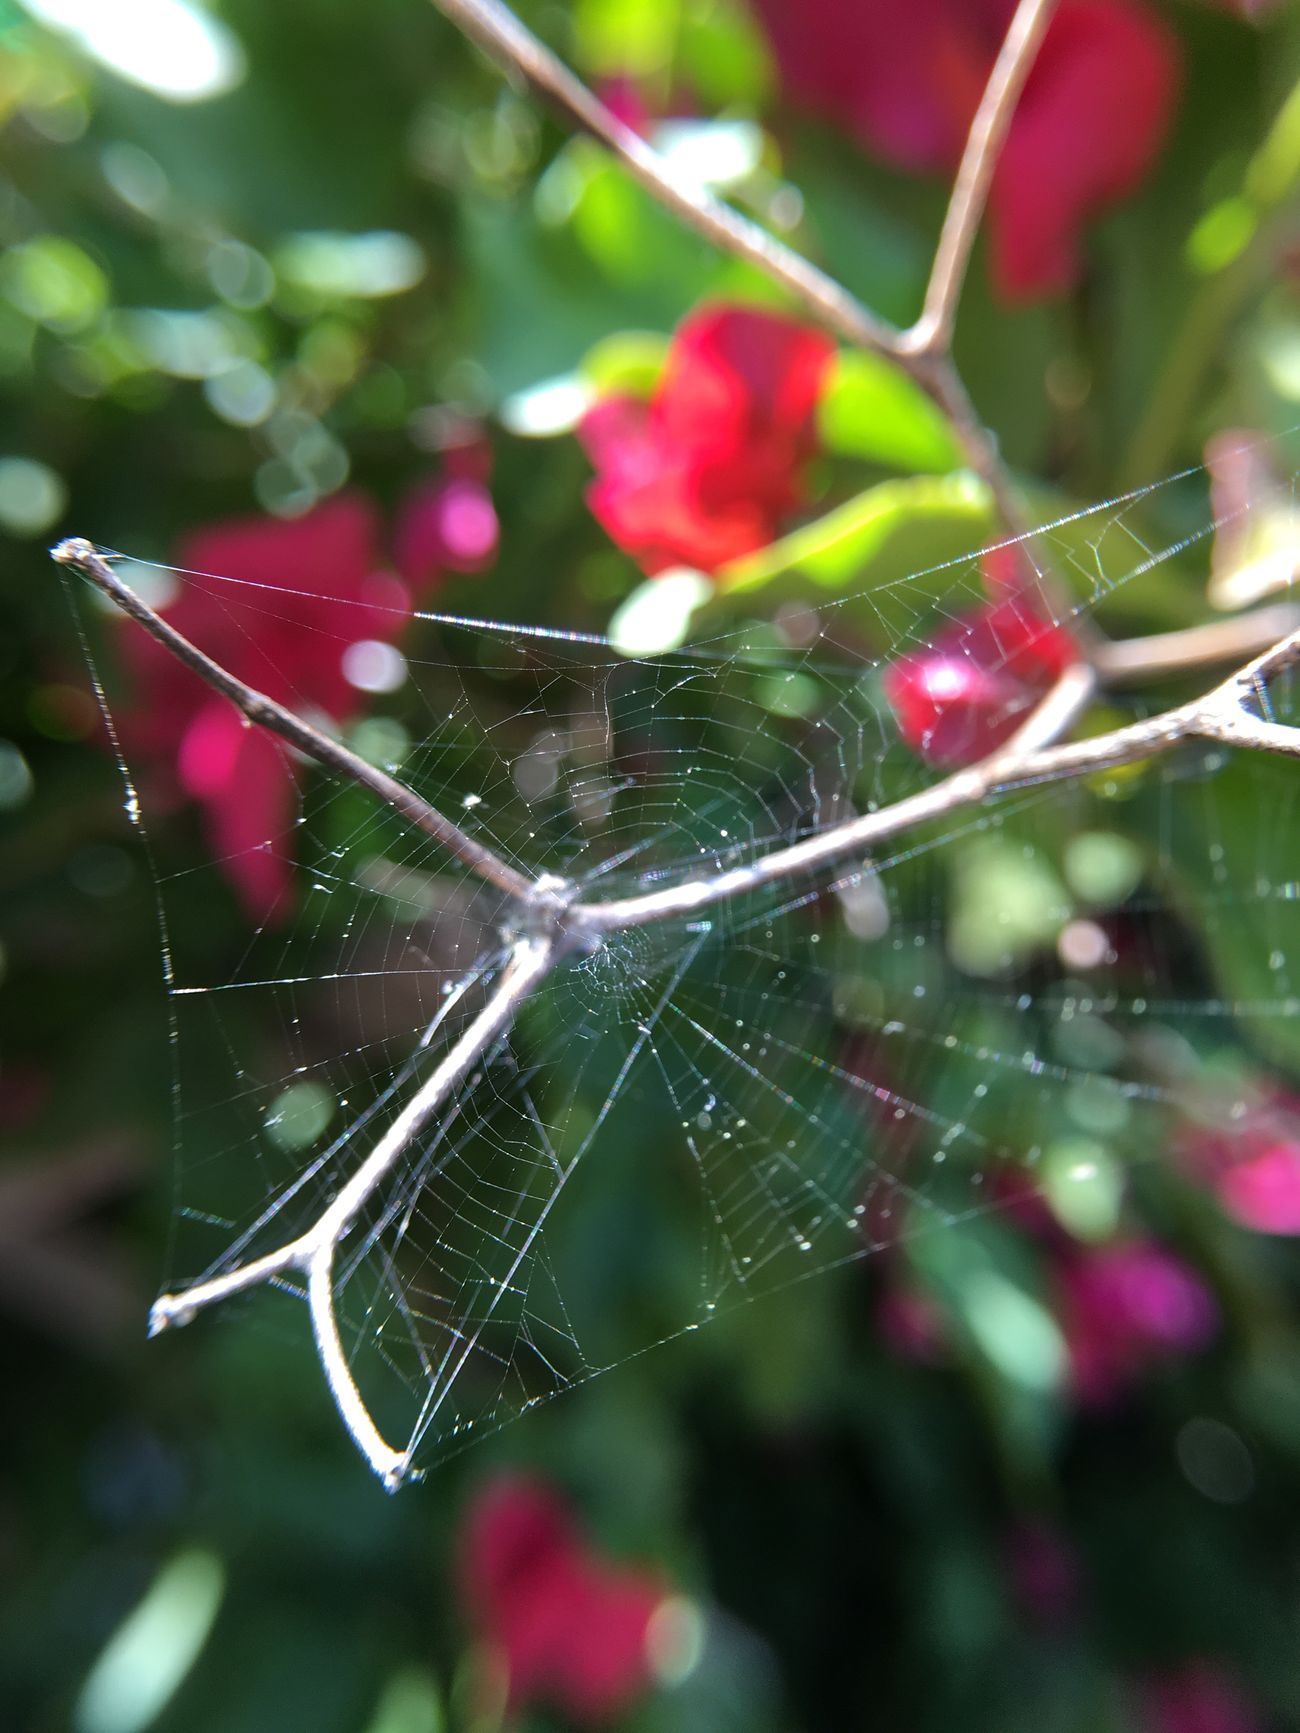 Spider Web Animal Themes One Animal Spider Close-up Nature Insect Animals In The Wild Fragility No People Beauty In Nature Day Web Survival Outdoors Animal Leg Macro Bougainvillea California Springtime Pink Color Pink Flower Spiderweb Thorns